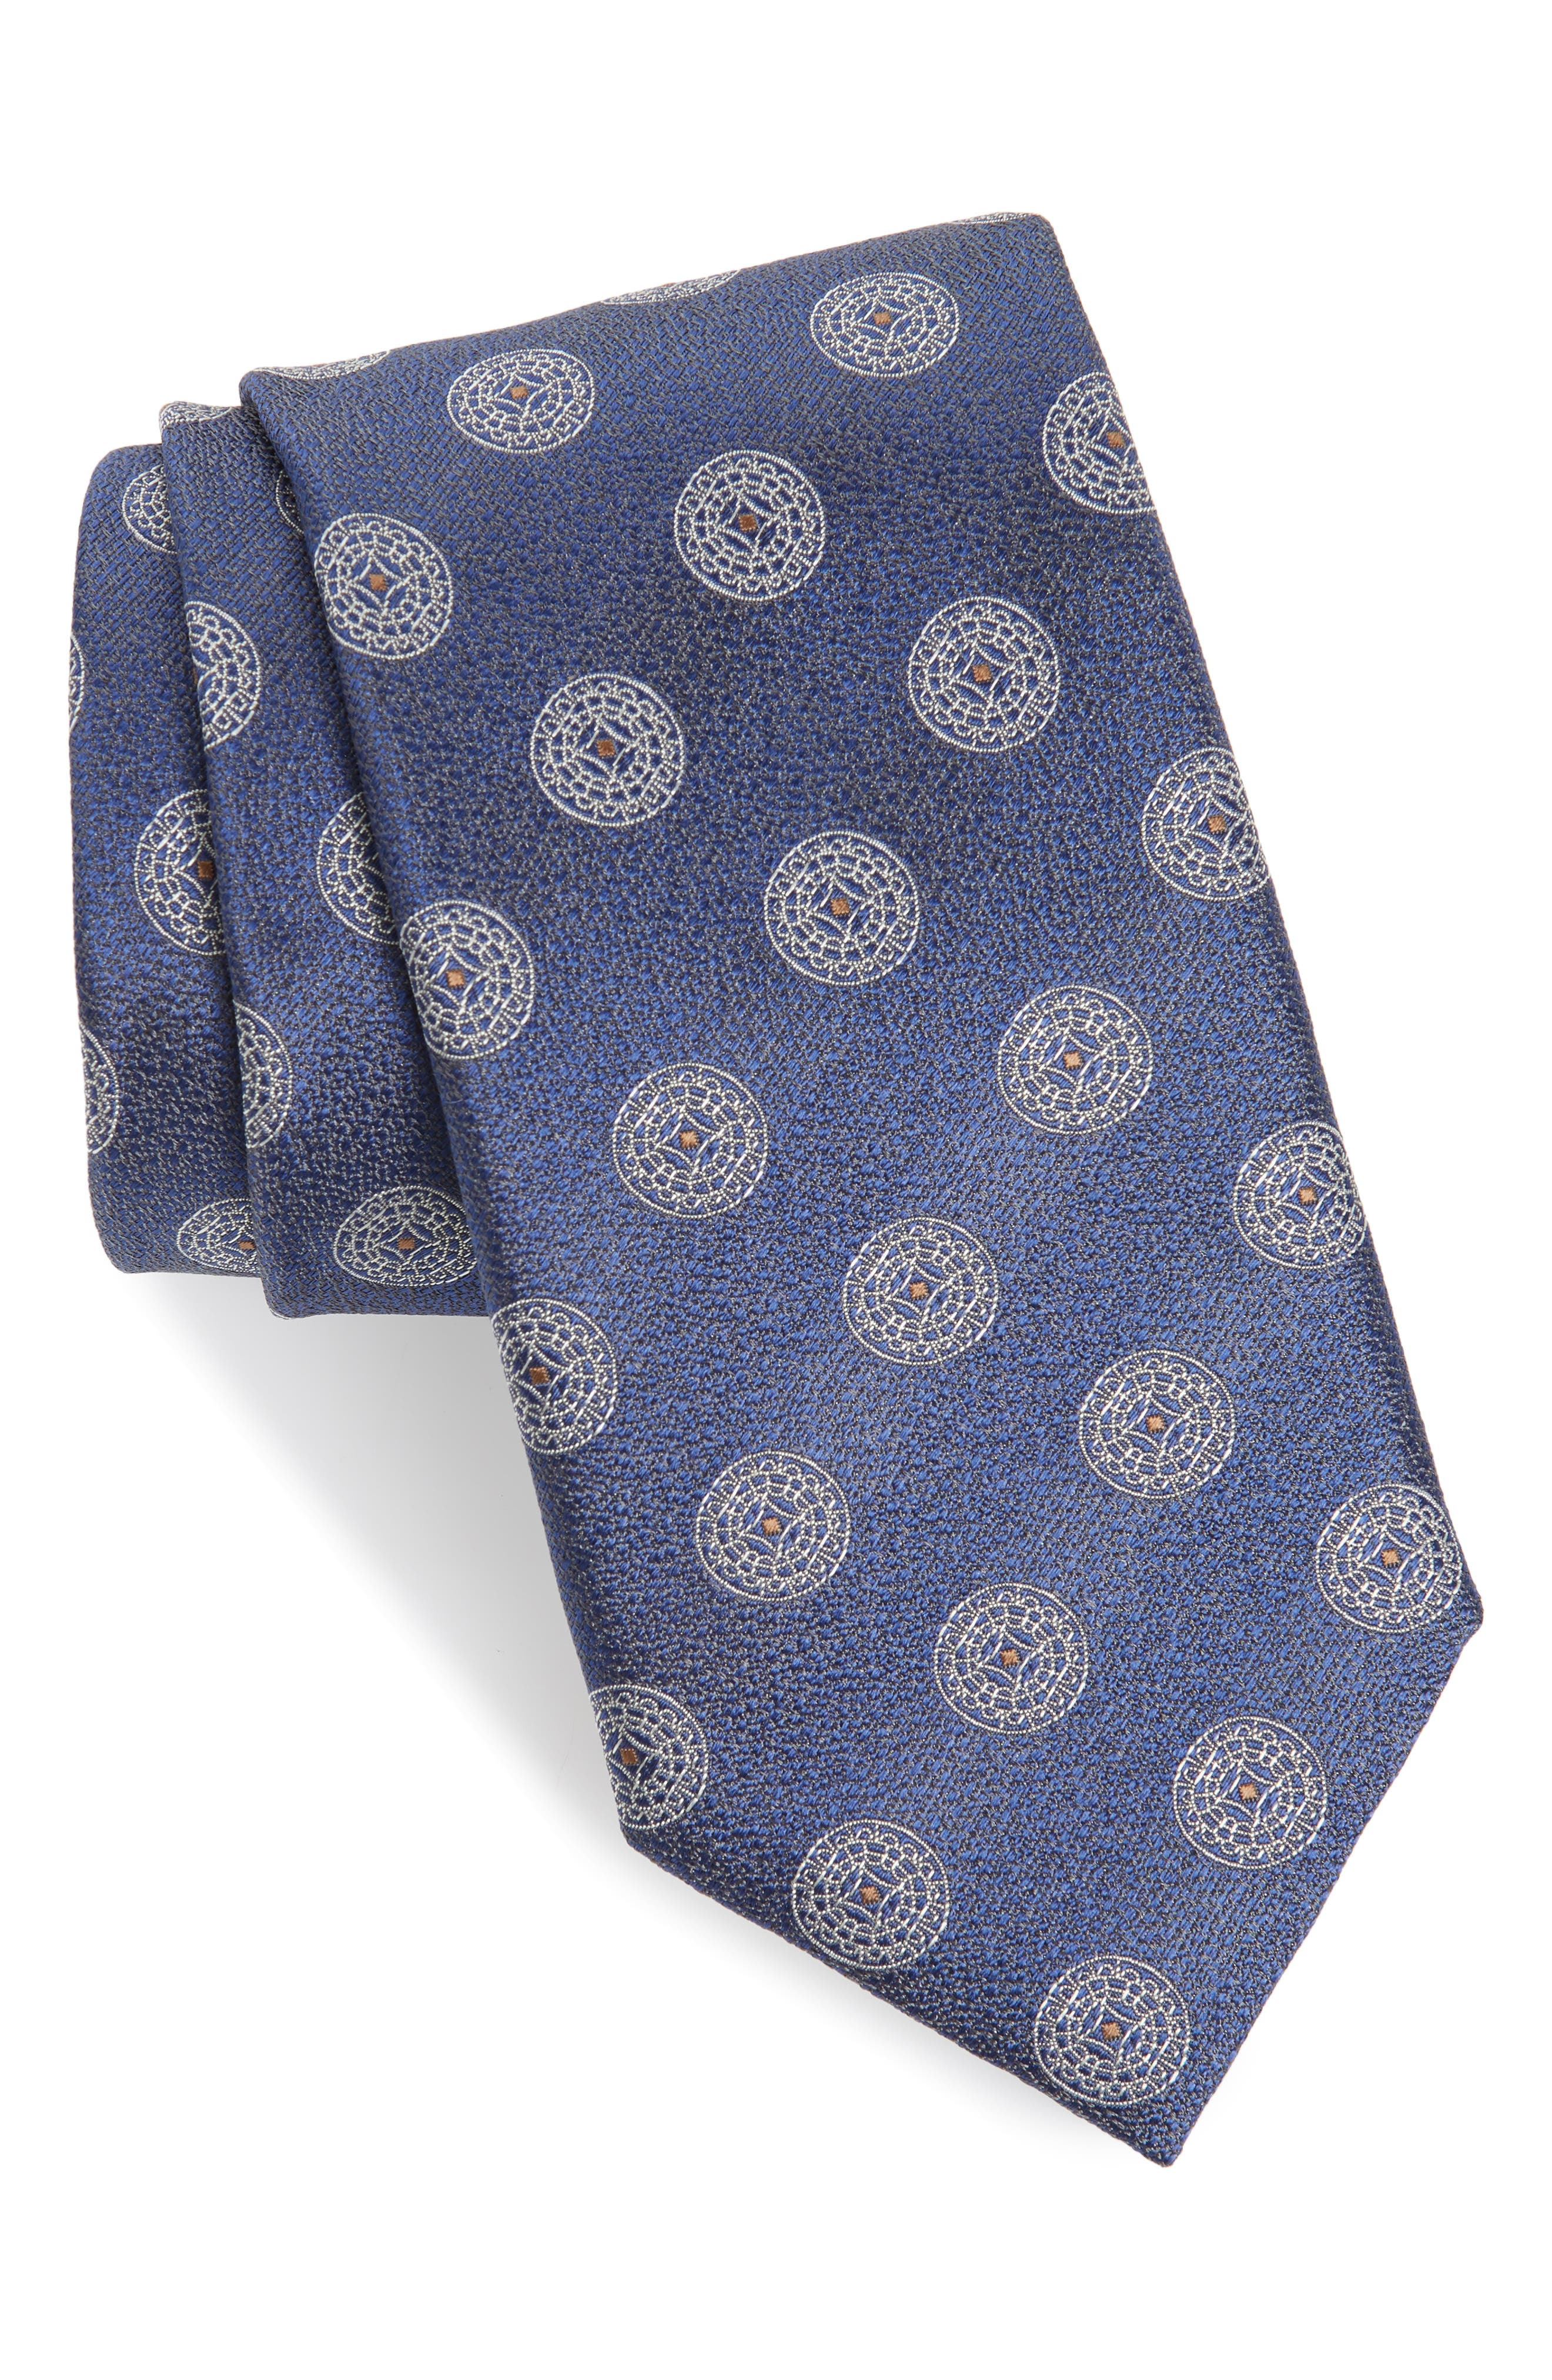 CANALI, Medallion Silk Tie, Main thumbnail 1, color, LIGHT BLUE